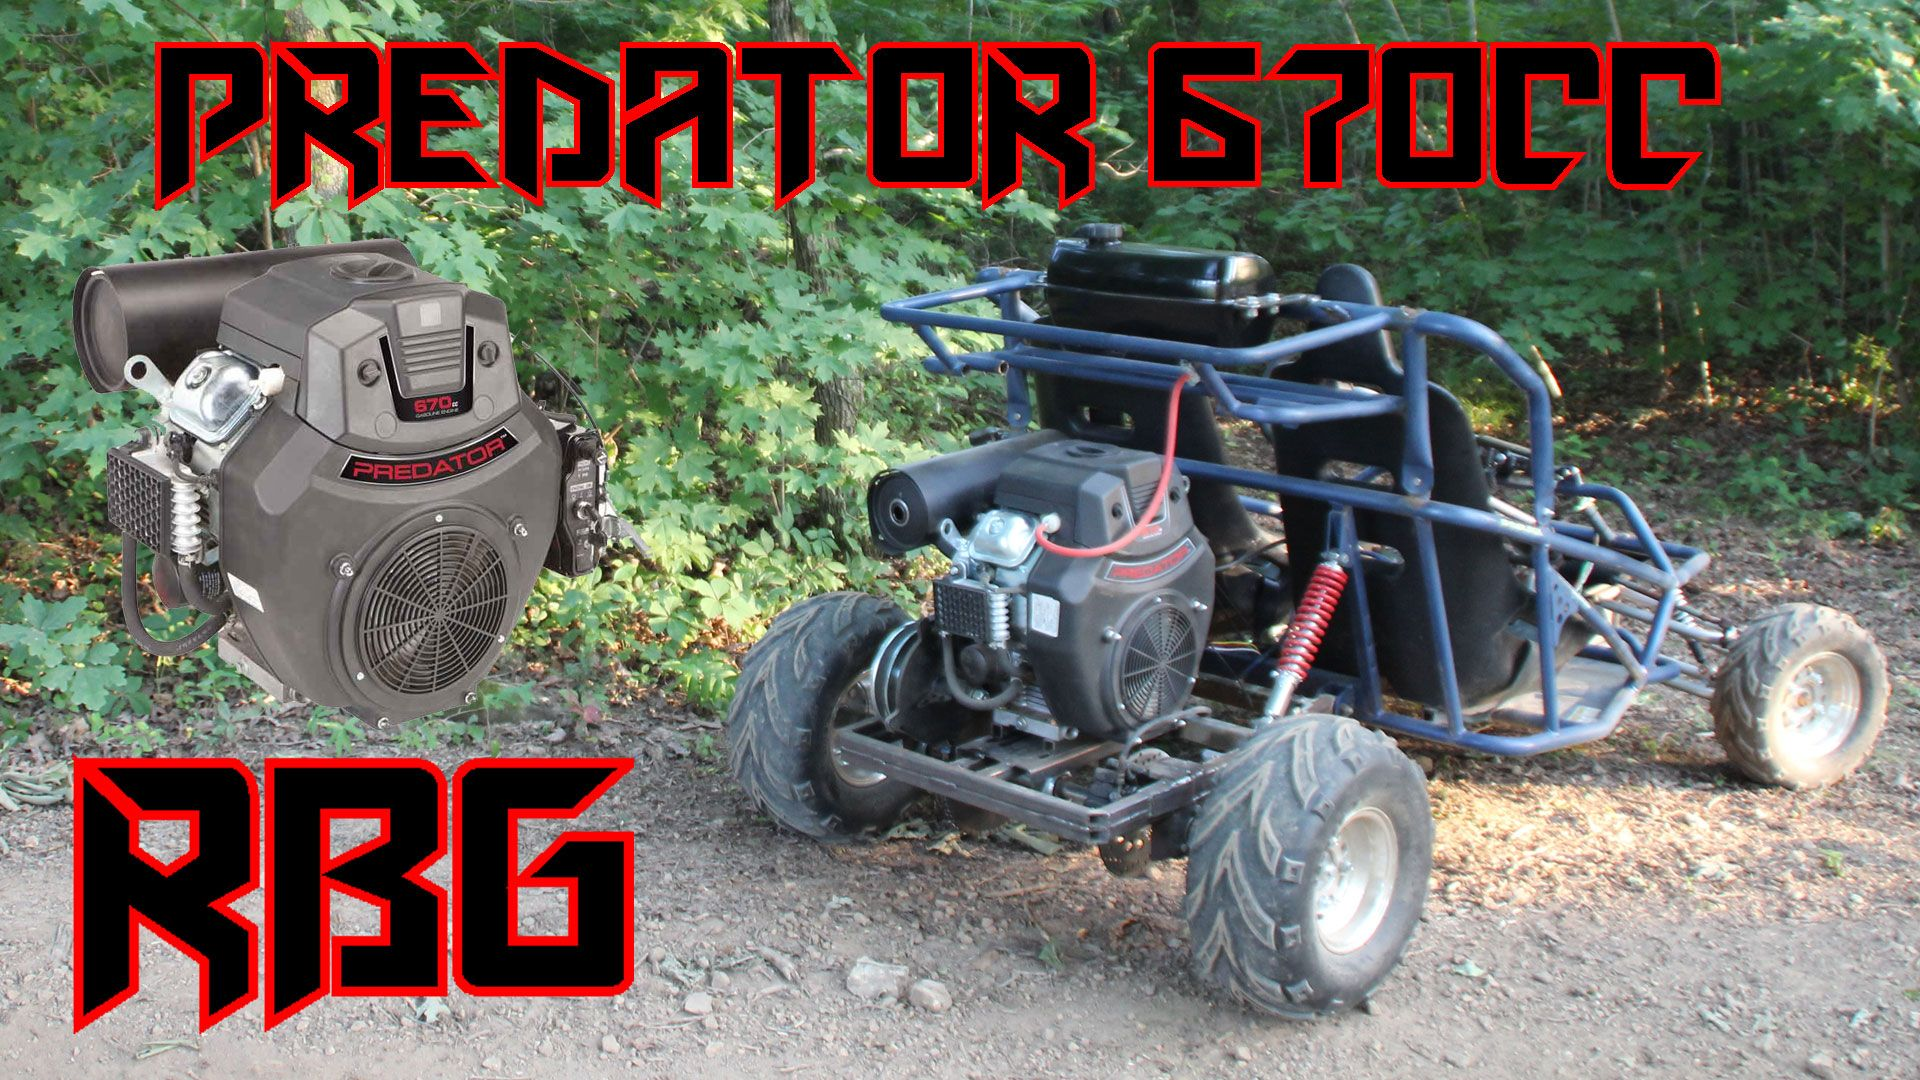 Yerf Dog off road kart with 670cc predator takes its first